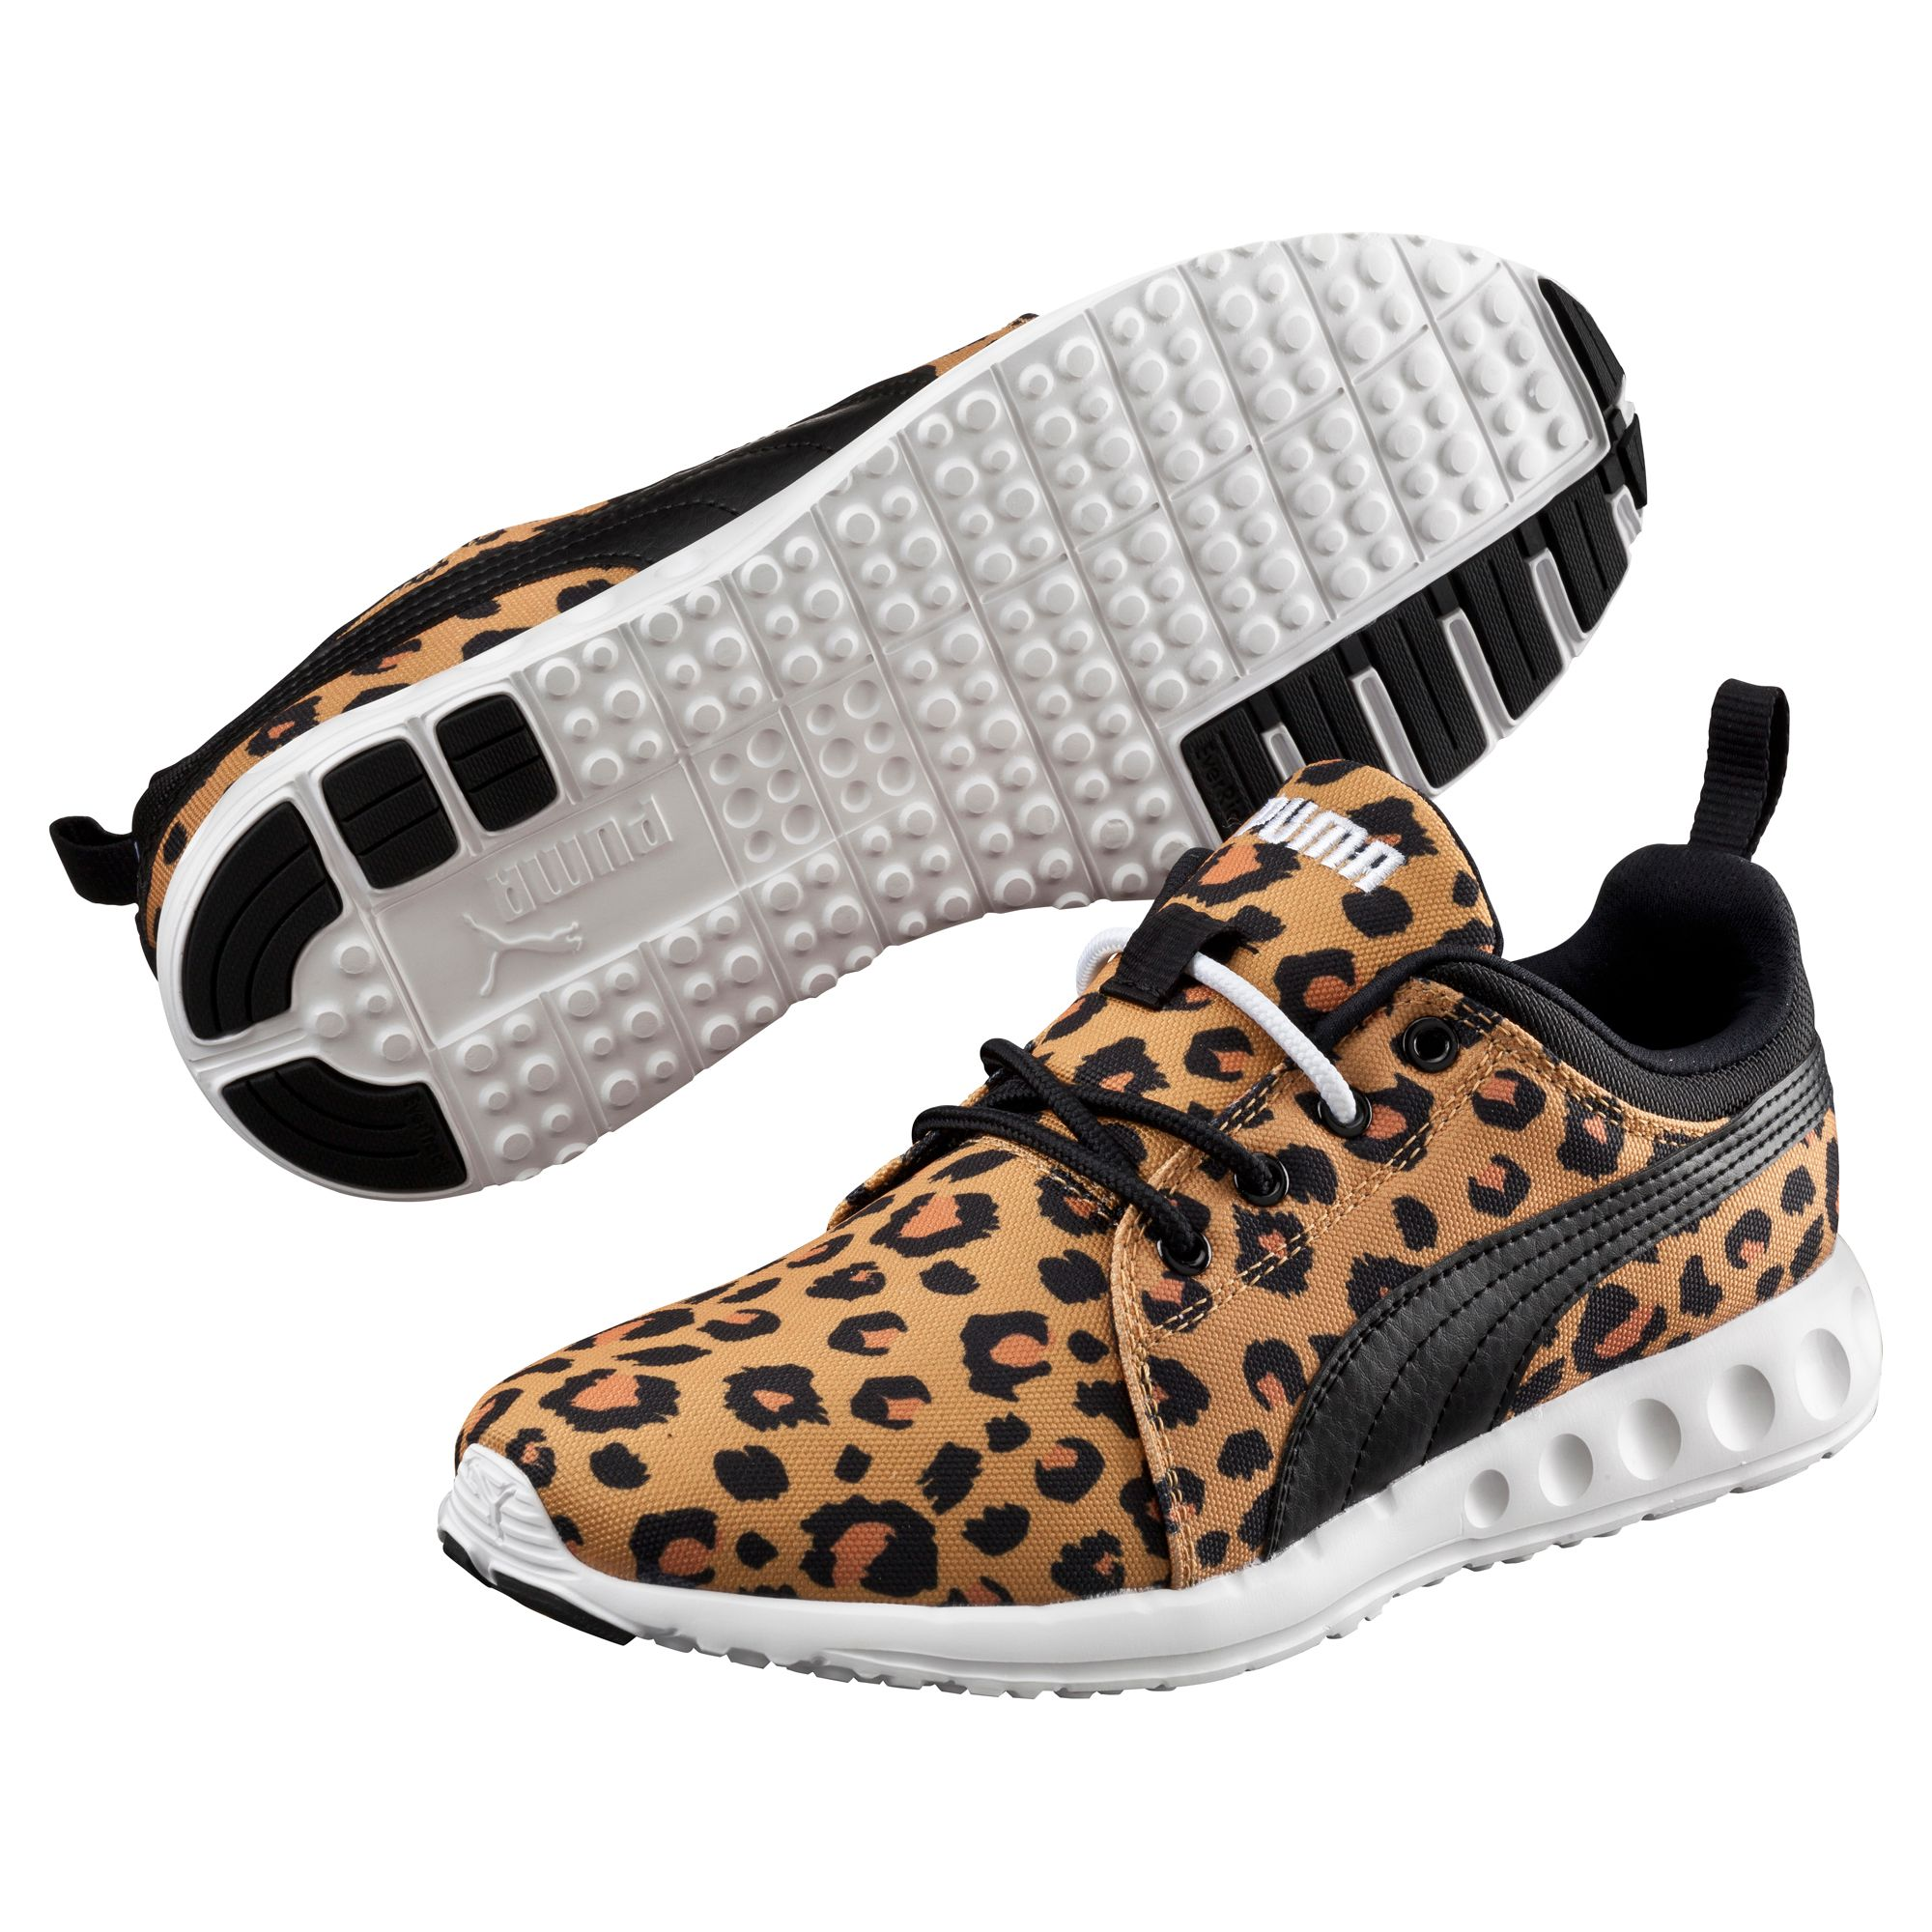 PUMA-Carson-Runner-Cheetah-Women-039-s-Running-